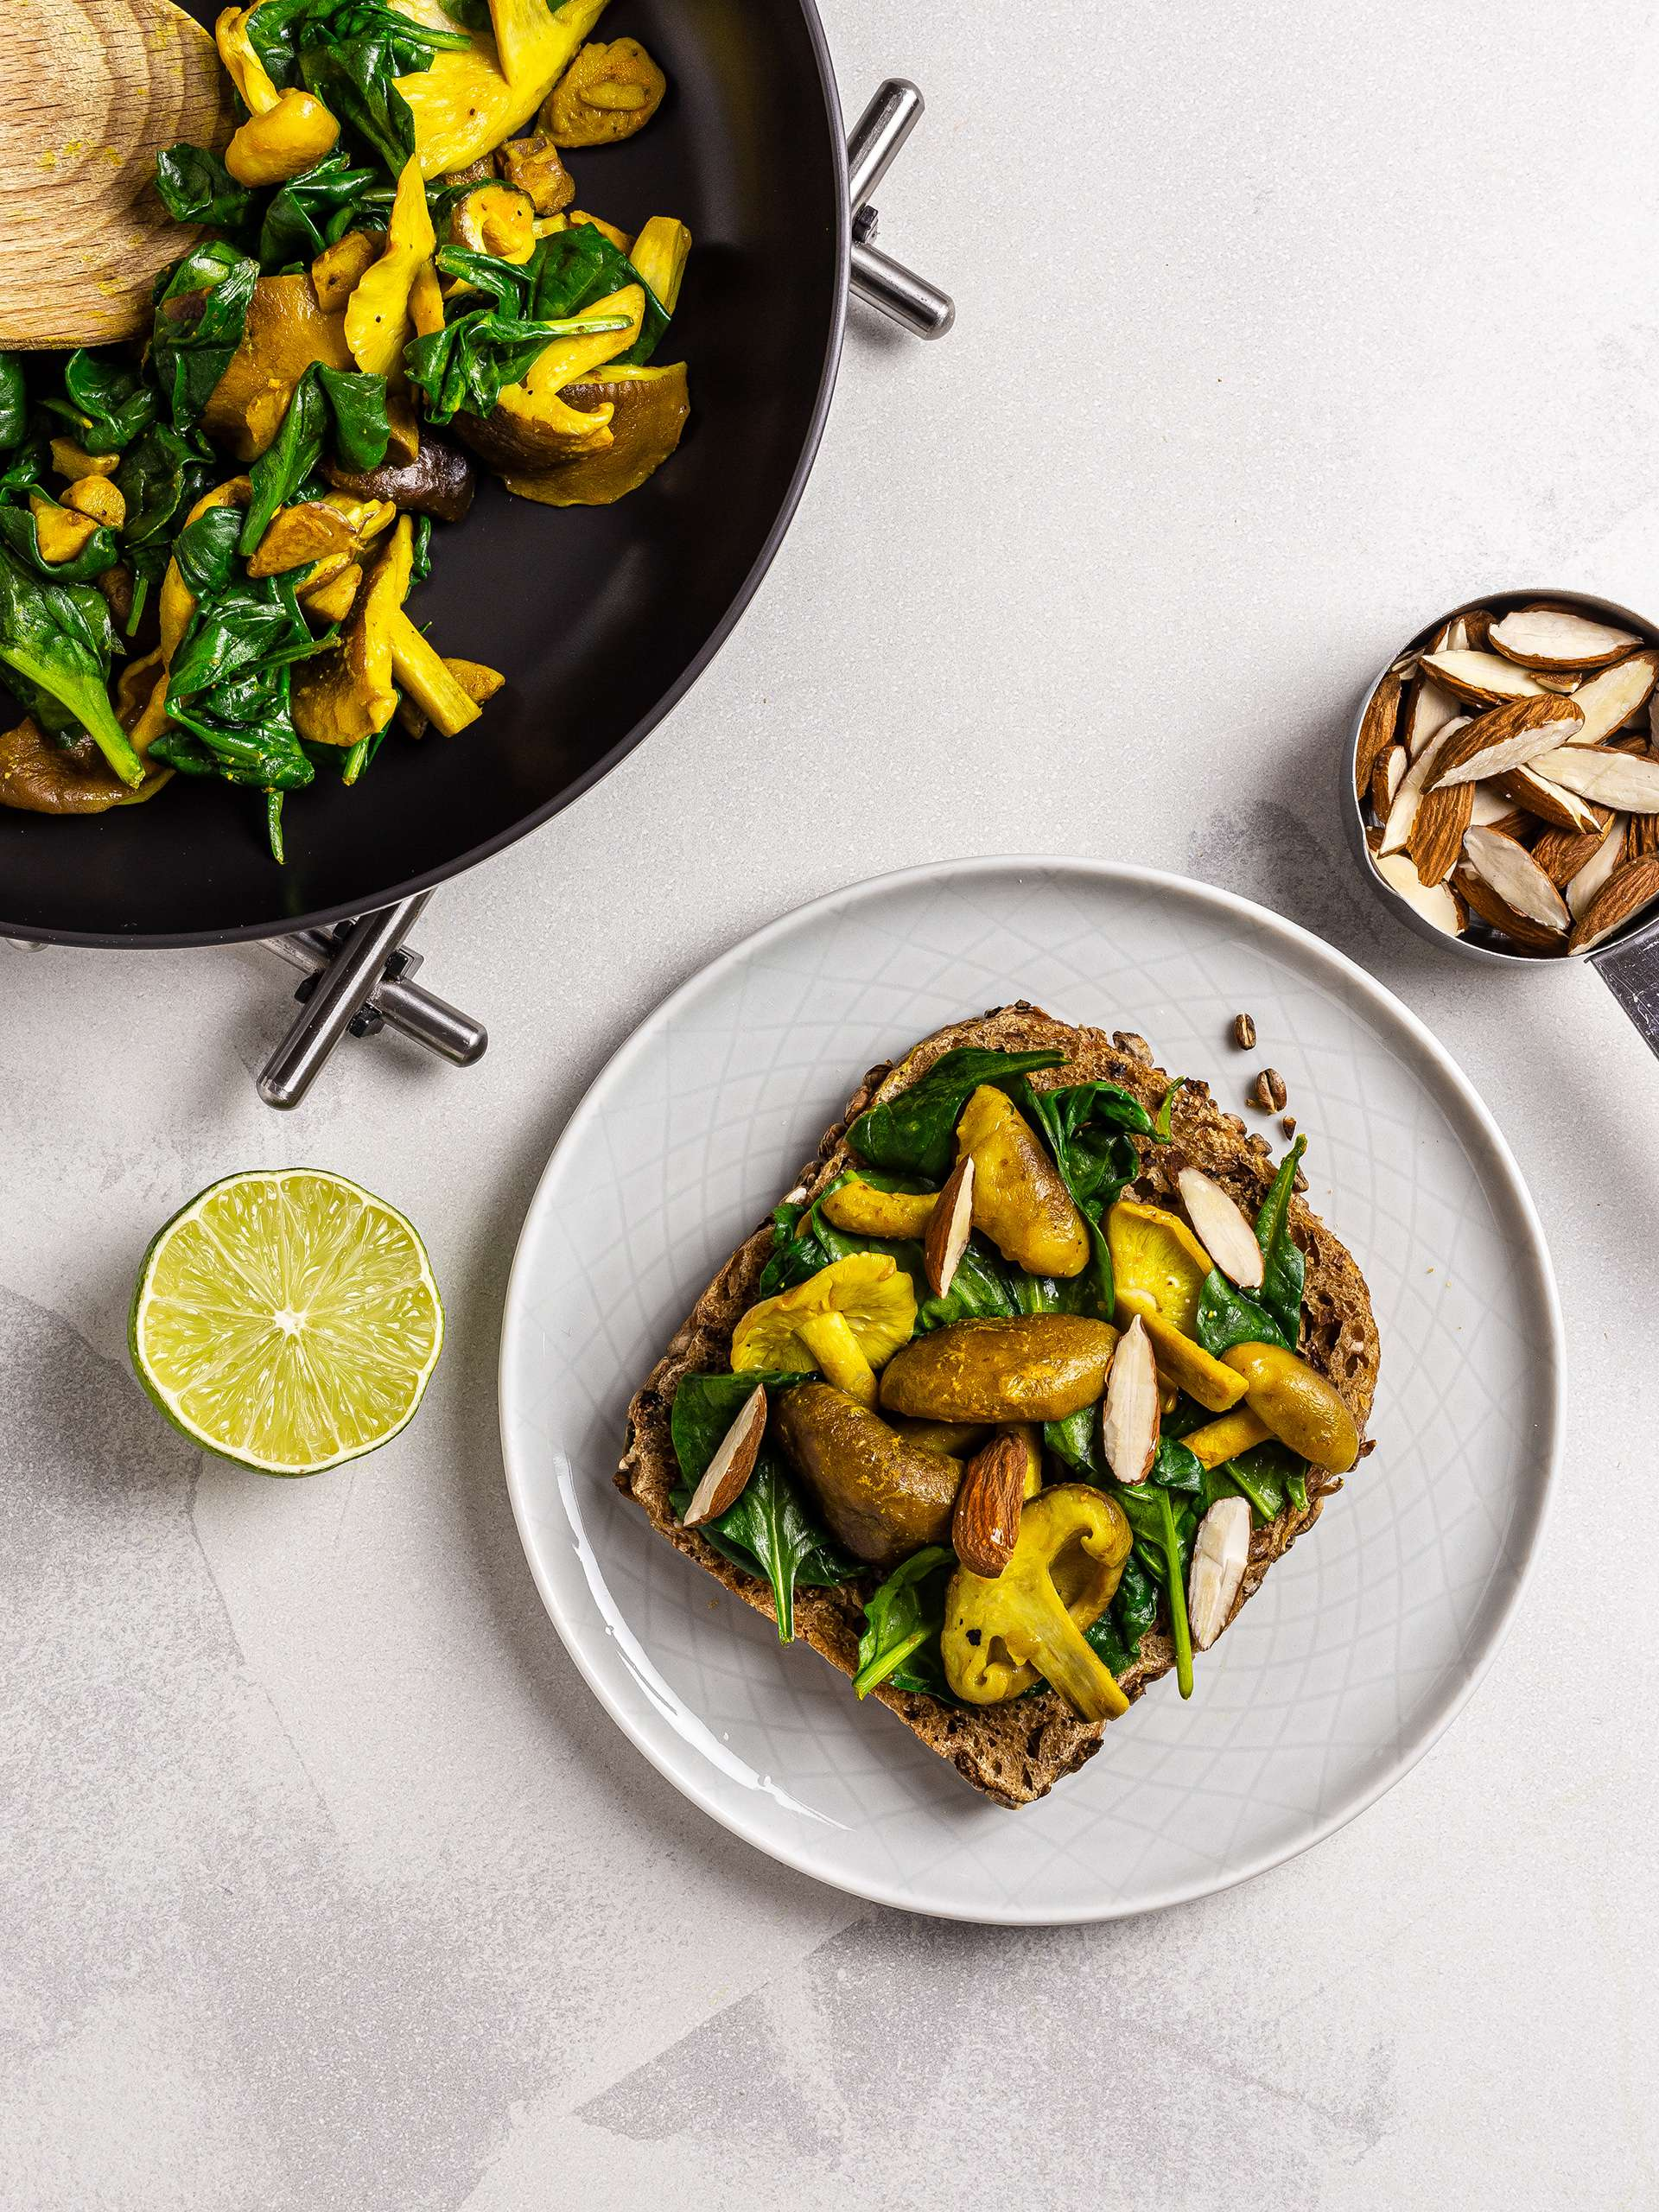 Sourdough toast with spinach, mushrooms and almonds